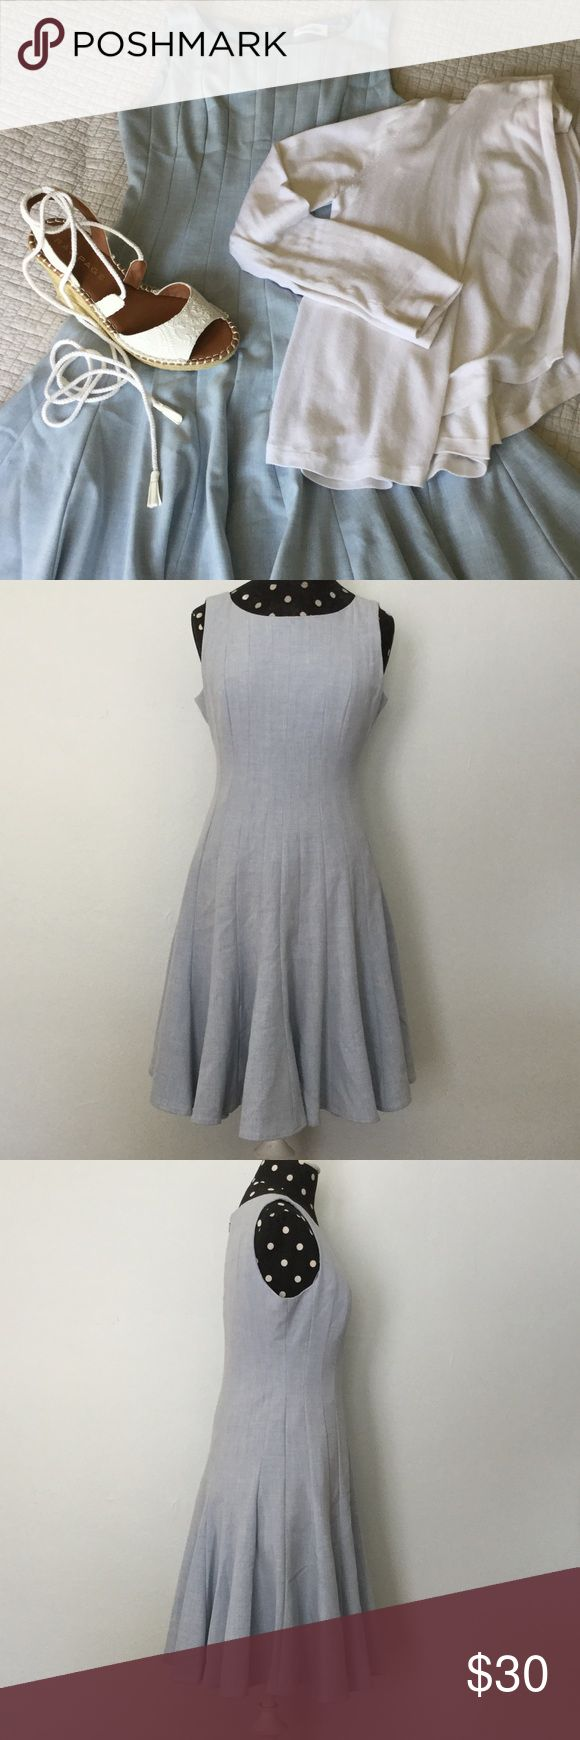 """Calvin Klein Dress 👗This Tank style dress is such a pretty shade of light blue. It has a shallow scoop neckline; sleeveless; zipper at back; & fully lined. Skirt is very full at hemline so lots of """"swing"""" action. Layer a sweater over for chilly nights & add your casual espadrilles to complete the look or wear a structured jacket for office. Options! In EUC as only worn a few times. 36"""" bust; 28"""" waist; 35"""" shoulder to hem. Calvin Klein Dresses"""